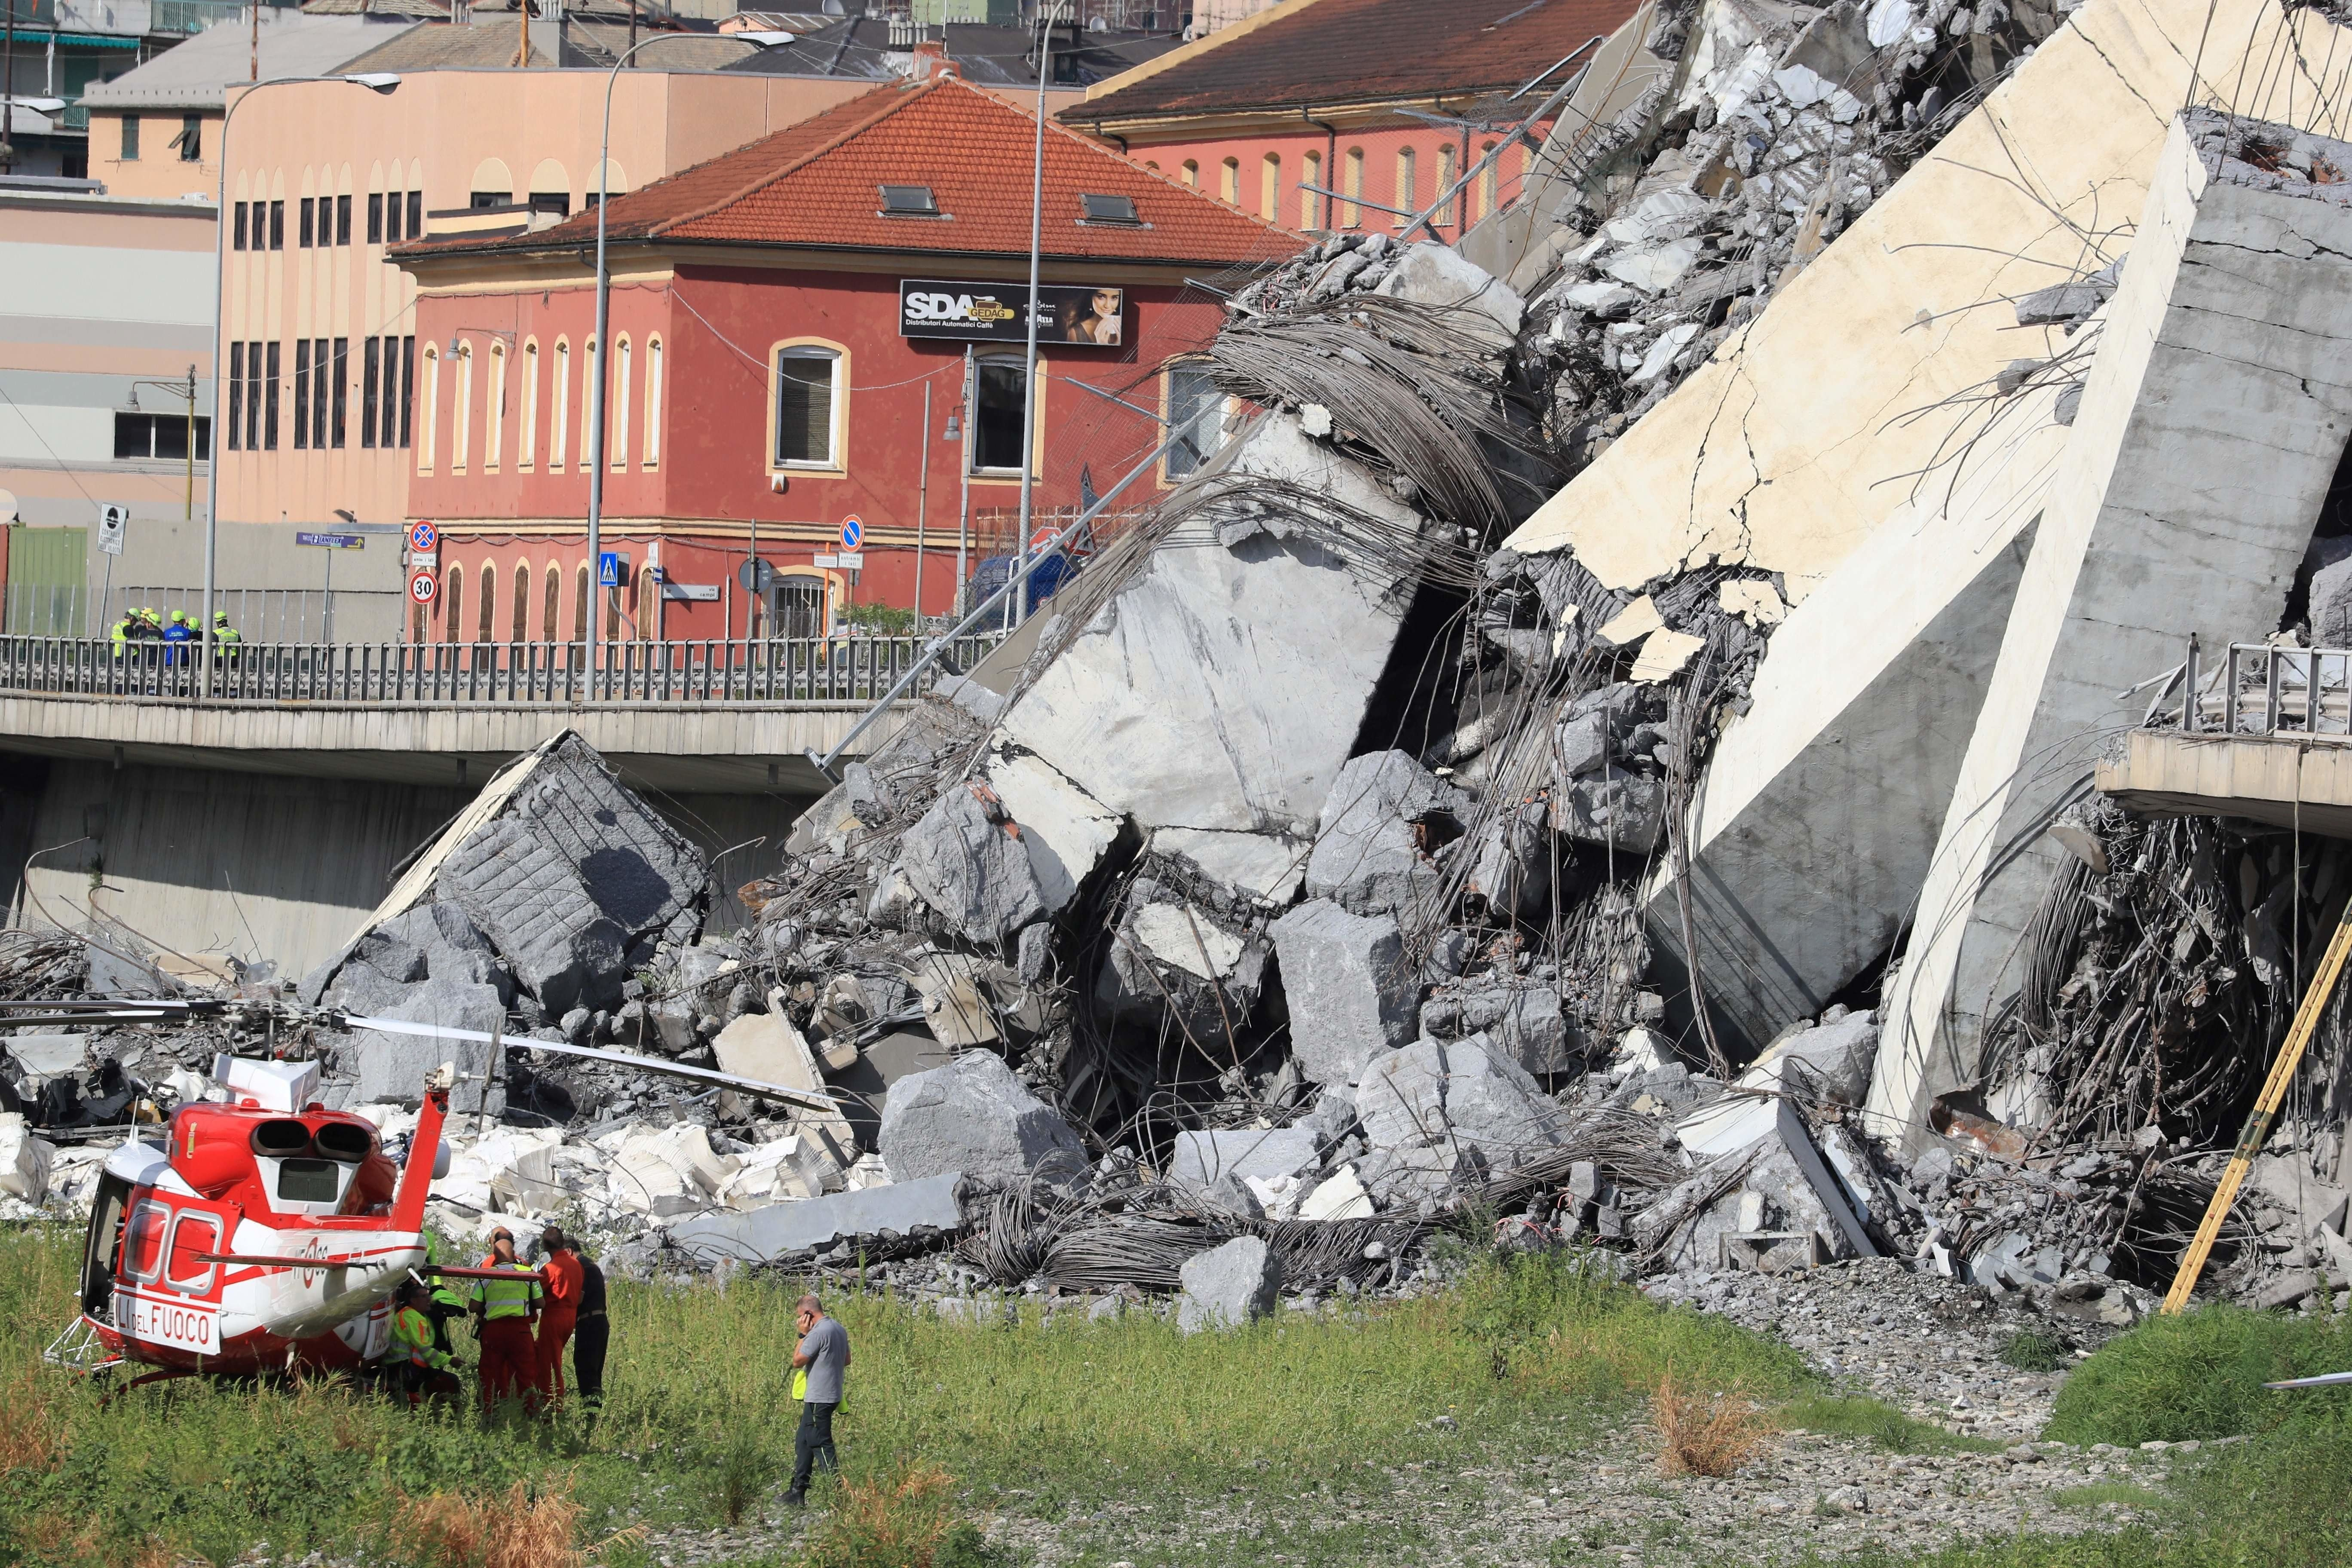 Rescuers work at the site where the Morandi motorway bridge collapsed in Genoa on August 14, 2018. - At least 30 people were killed on August 14 when the giant motorway bridge collapsed in Genoa in northwestern Italy. The collapse of the viaduct, which saw a vast stretch of the A10 freeway tumble on to railway lines in the northern port city, was the deadliest bridge failure in Italy for years, and the country's deputy transport minister warned the death toll could climb further. (Photo by Valery HACHE / AFP)        (Photo credit should read VALERY HACHE/AFP/Getty Images)